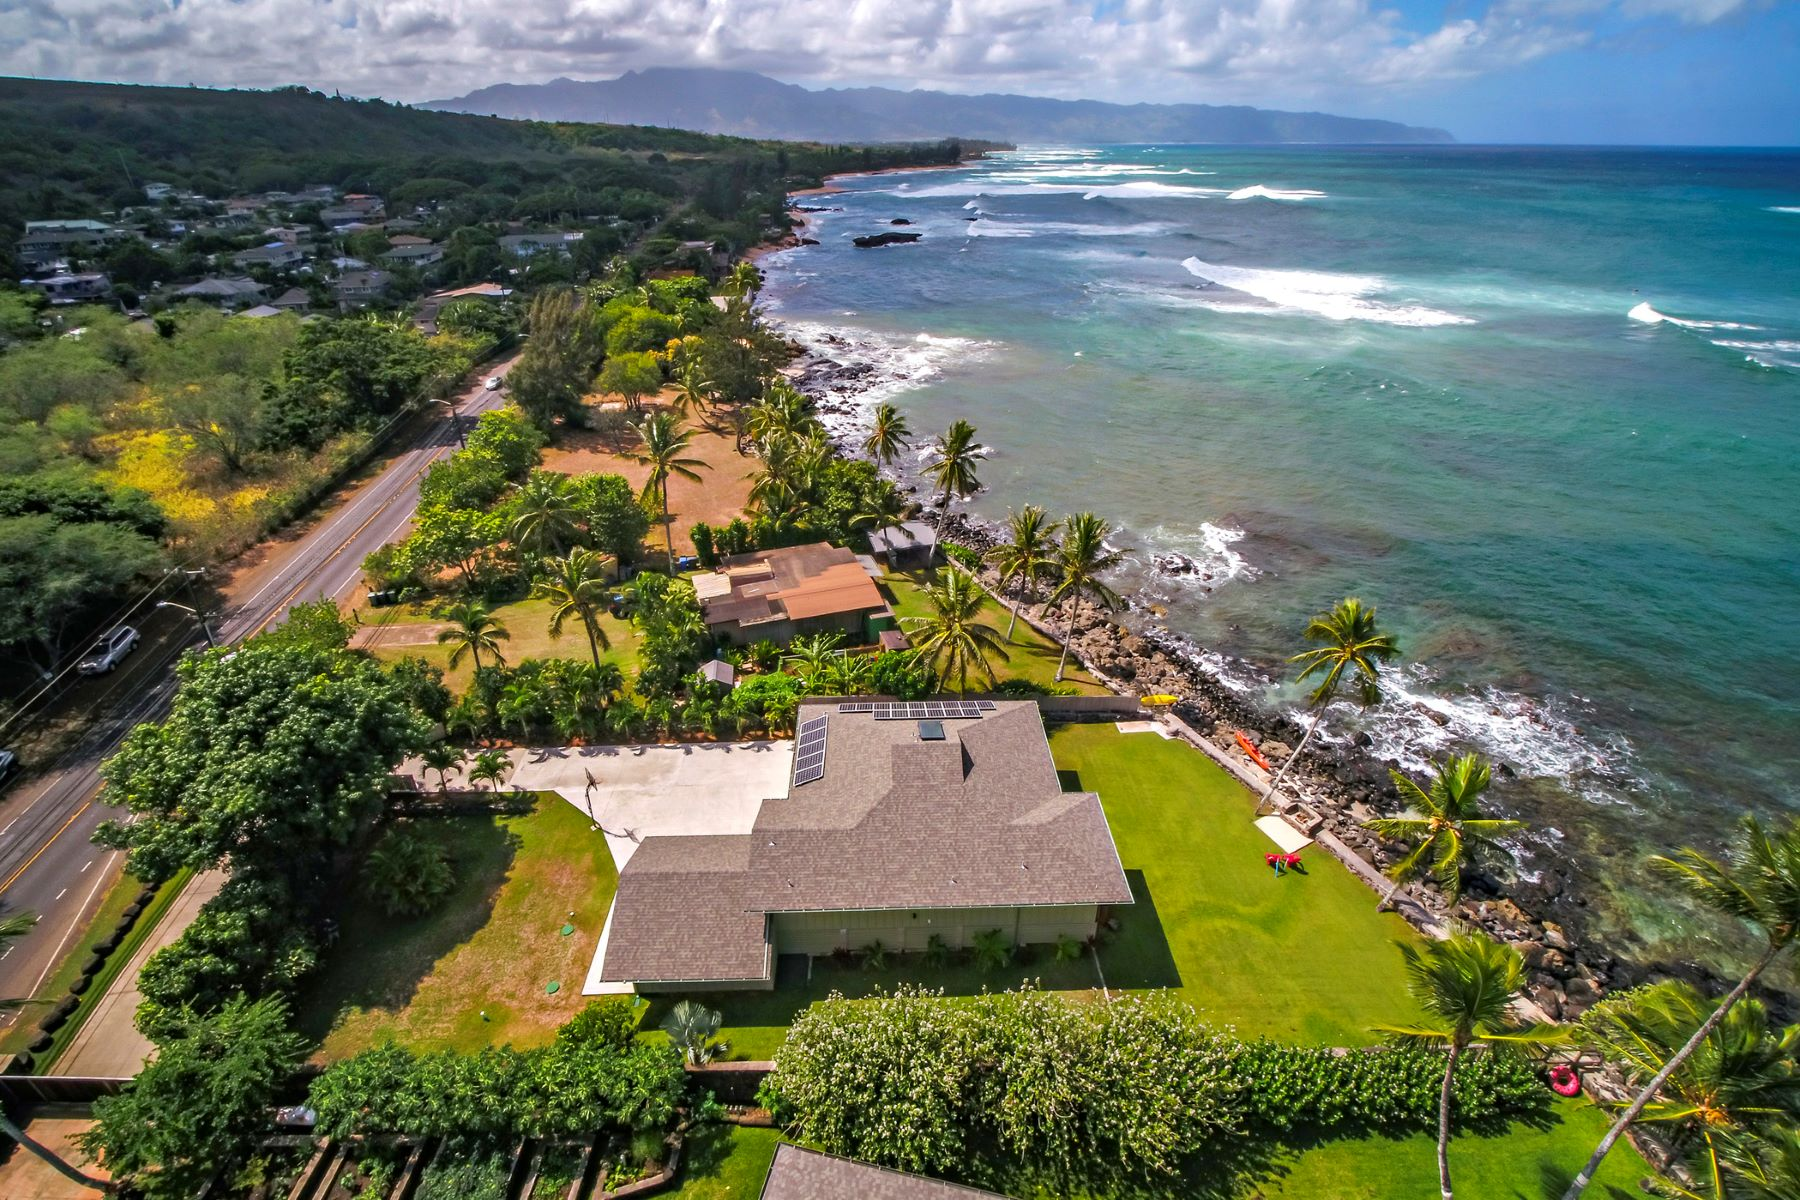 Single Family Home for Sale at The Miracle Mile House 61-237 Kamehameha Highway #A Haleiwa, Hawaii 96712 United States